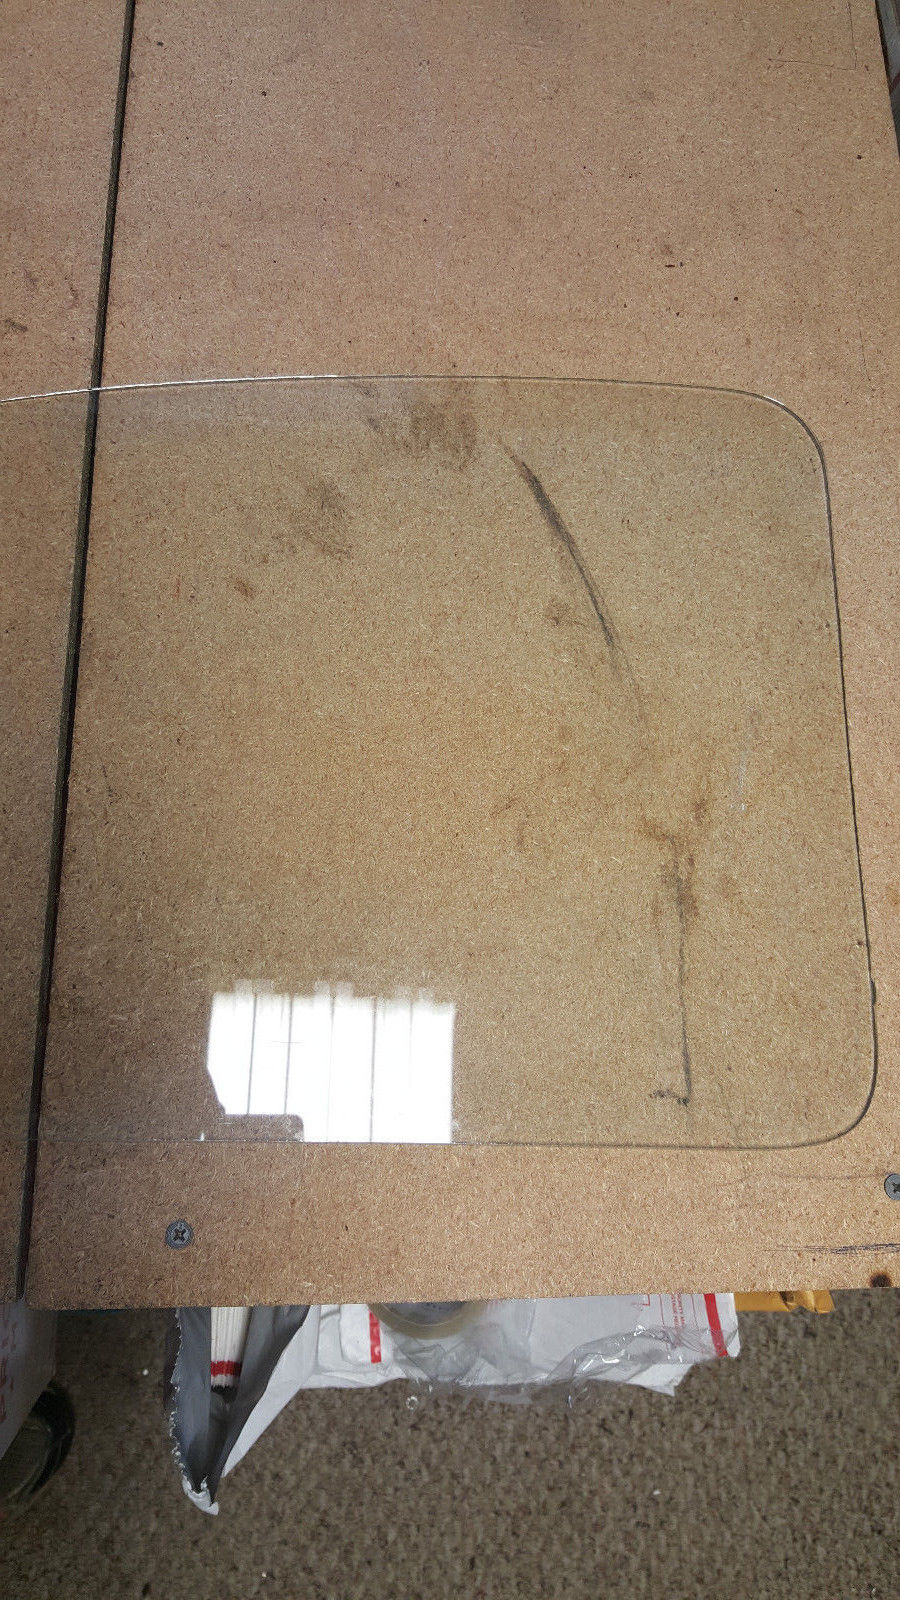 1965-78 VW Beetle LH/Driver Side Rear Quarter Window Glass ARM-R-CLAD AS2 M61 10 Does not apply